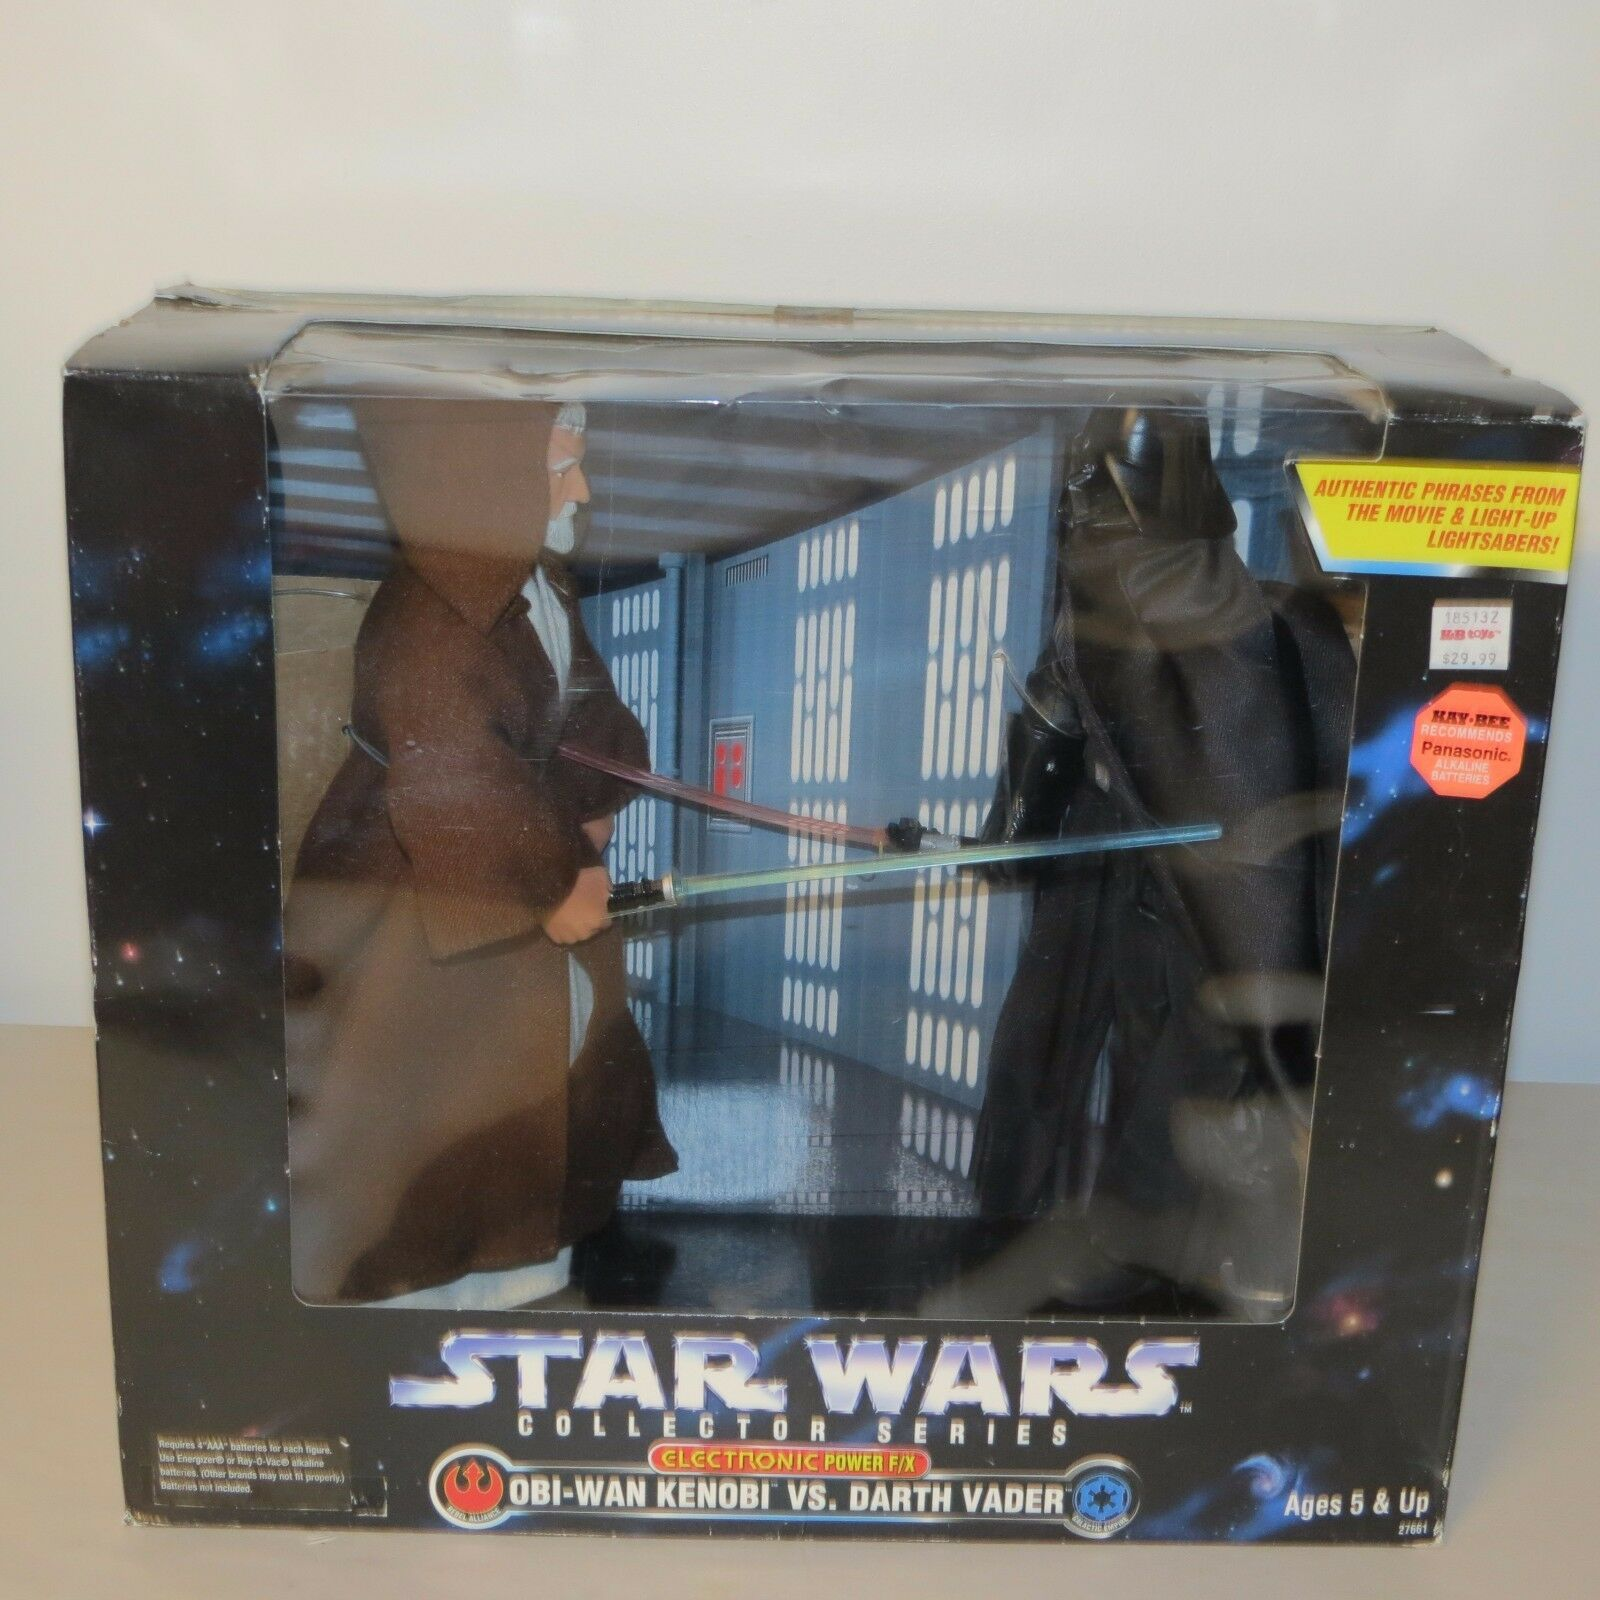 Star - wars - elektronik macht f   x obi-wan kenobi vs darth vader kenner 1997